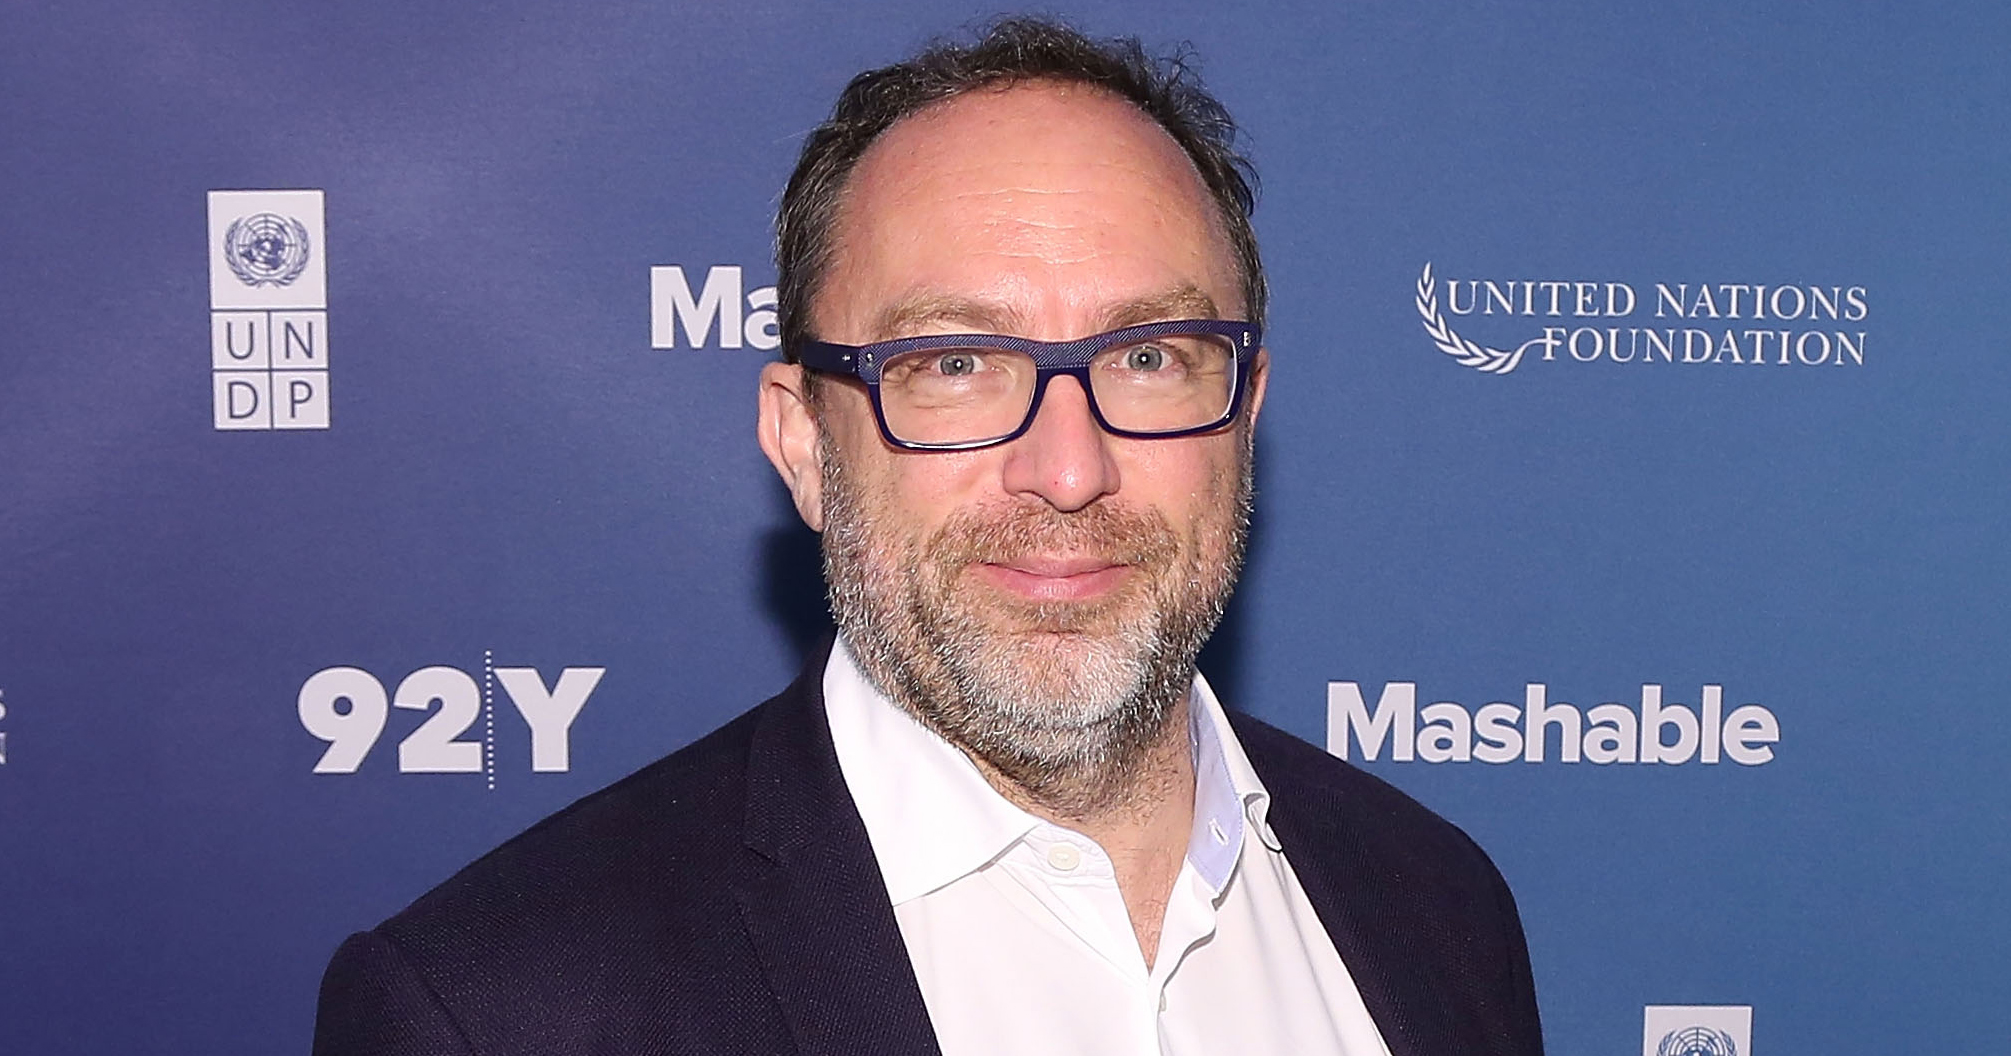 Wikipedia founder Jimmy Wales is seen on Sept. 27, 2015 in New York City.